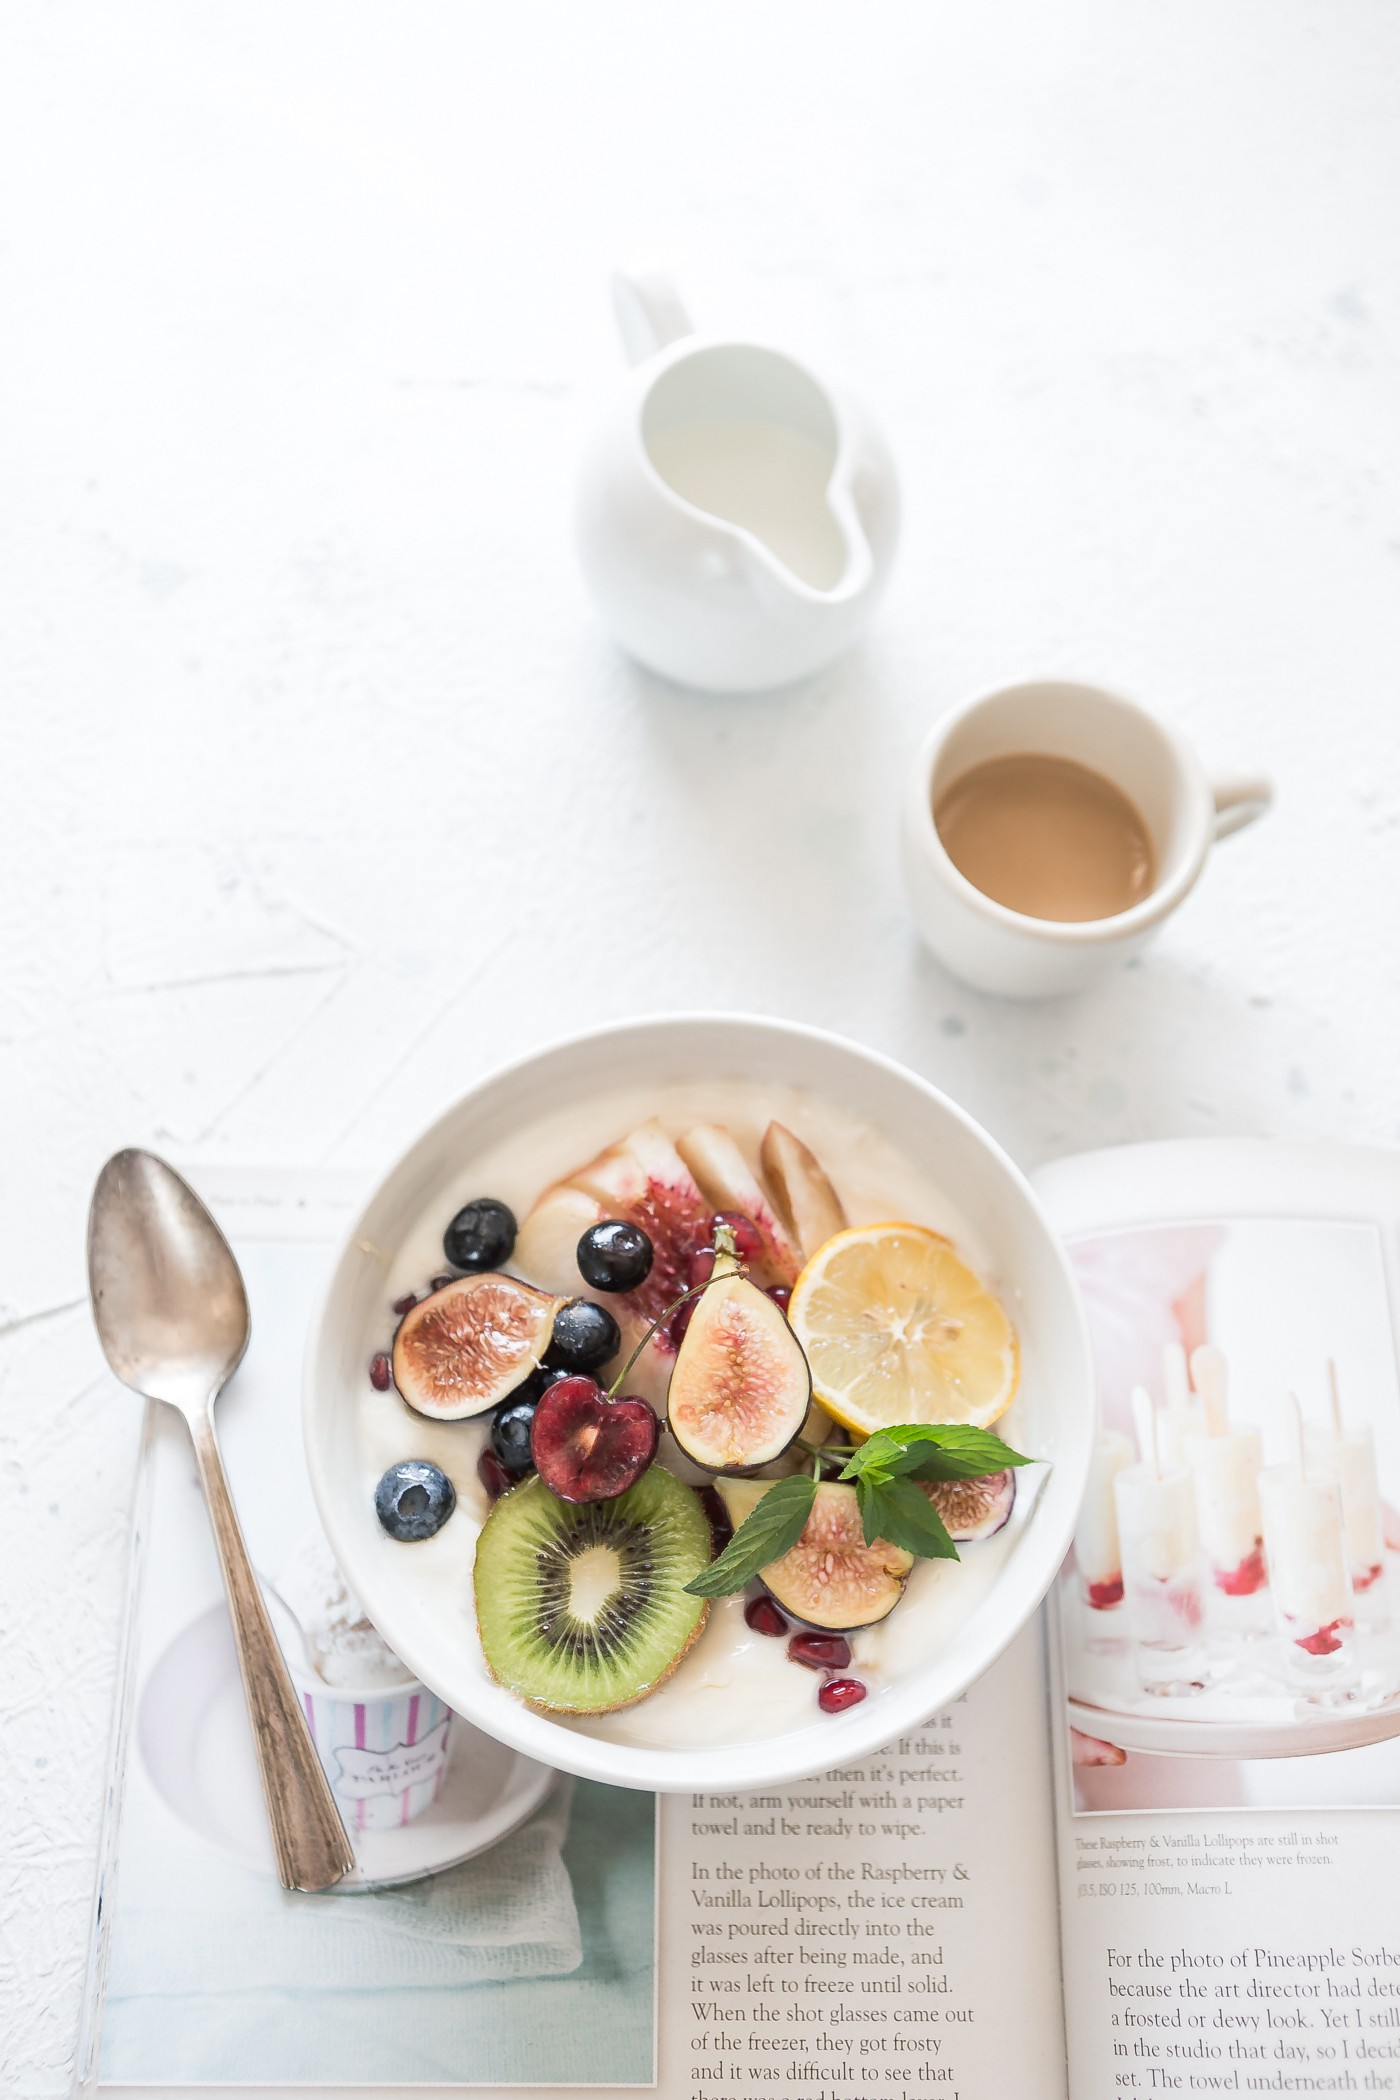 a bowl of yogurt with sliced fruit on top, a cup of espresso and a small bit of milk for the coffee. The bowl is sitting on top of an open magazine showing an article and photos of yogurt-based foods.